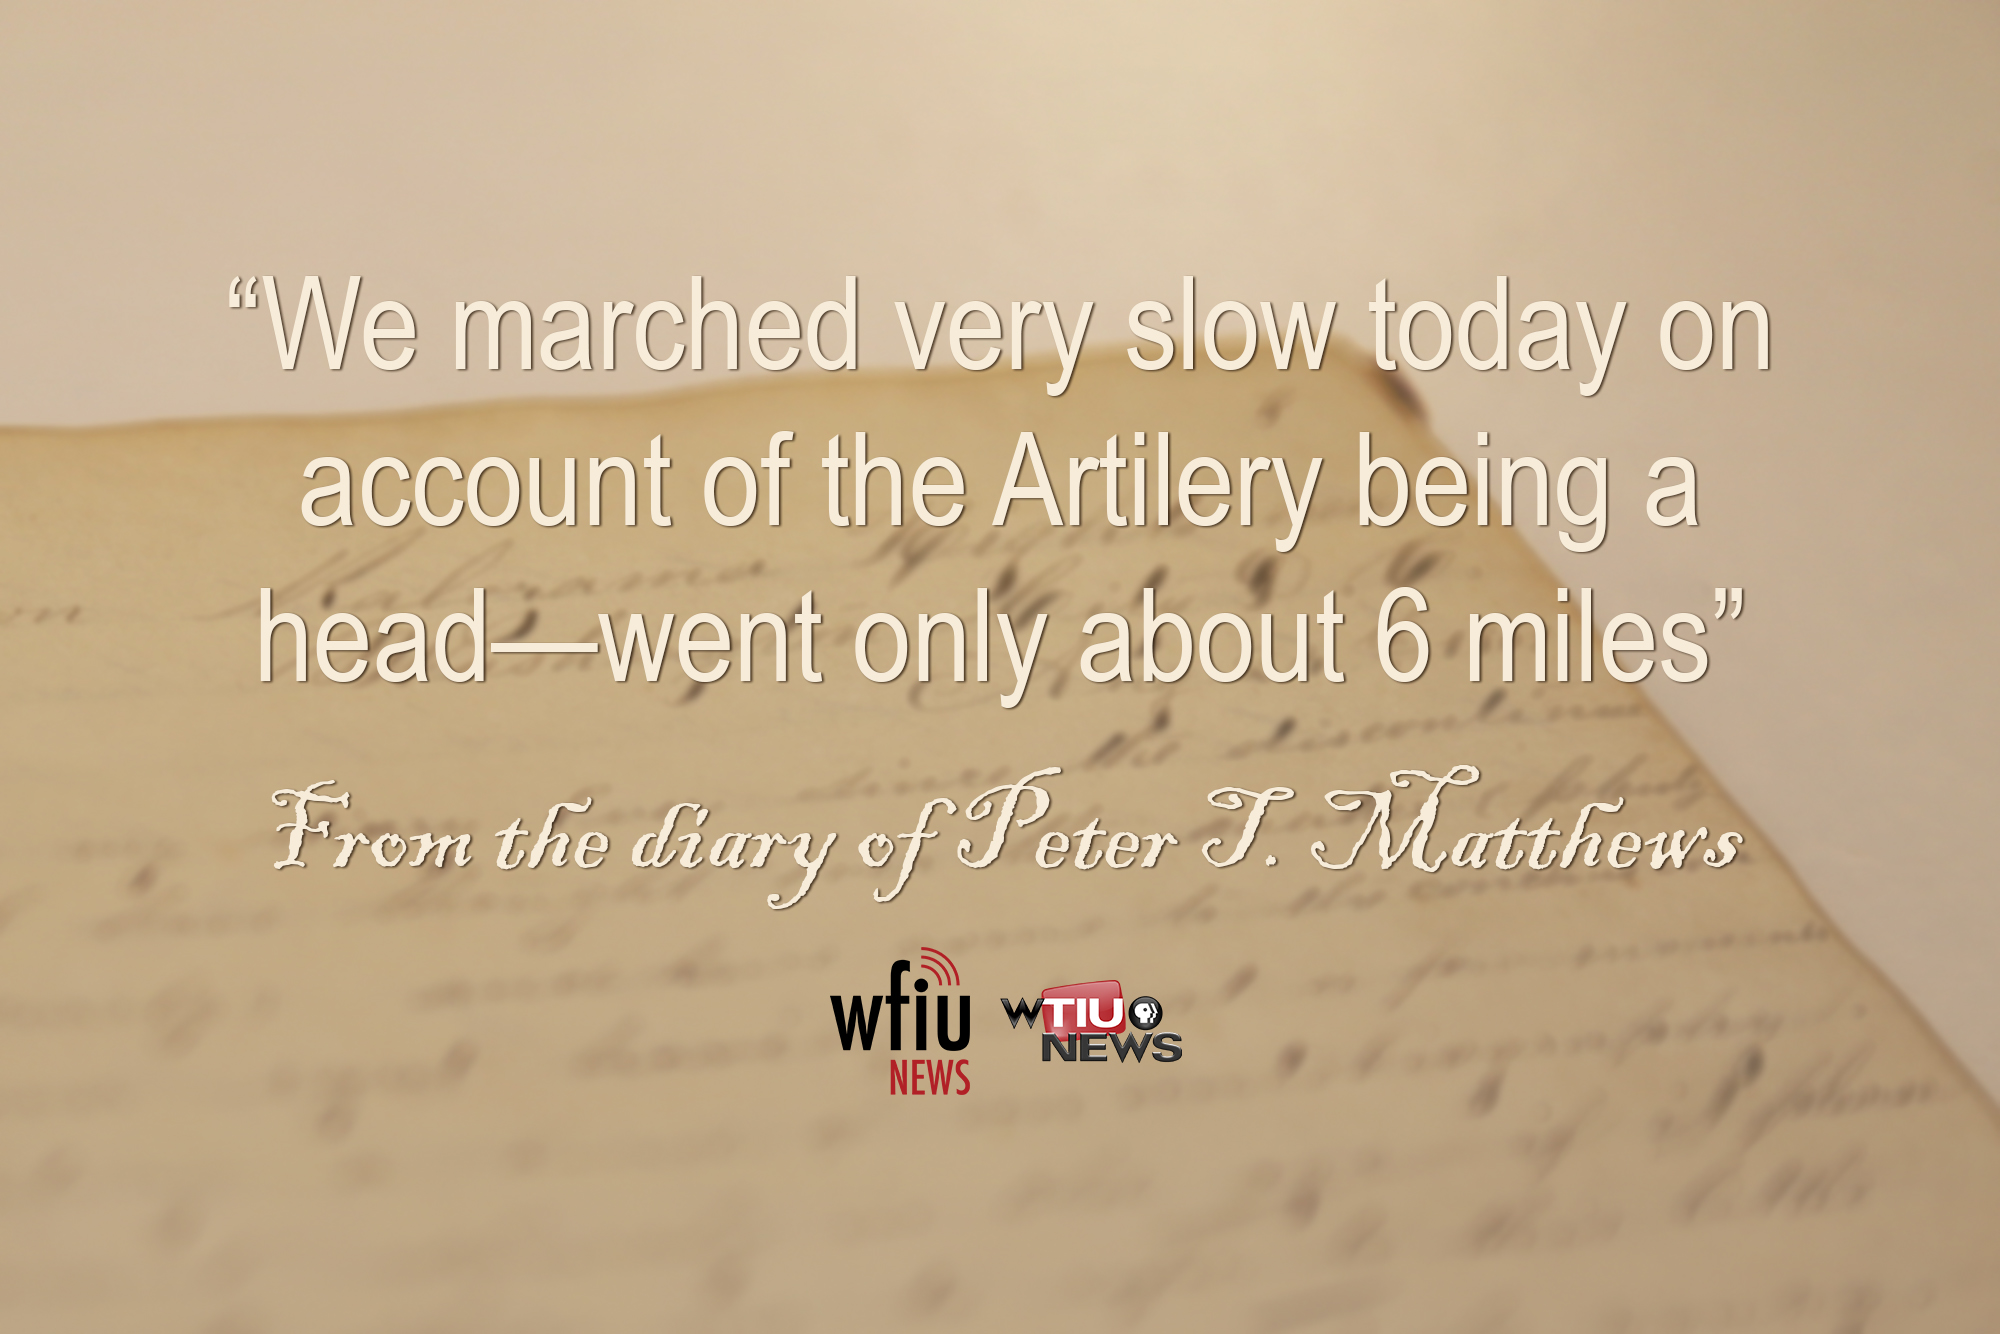 April 6 quote from civil war diary